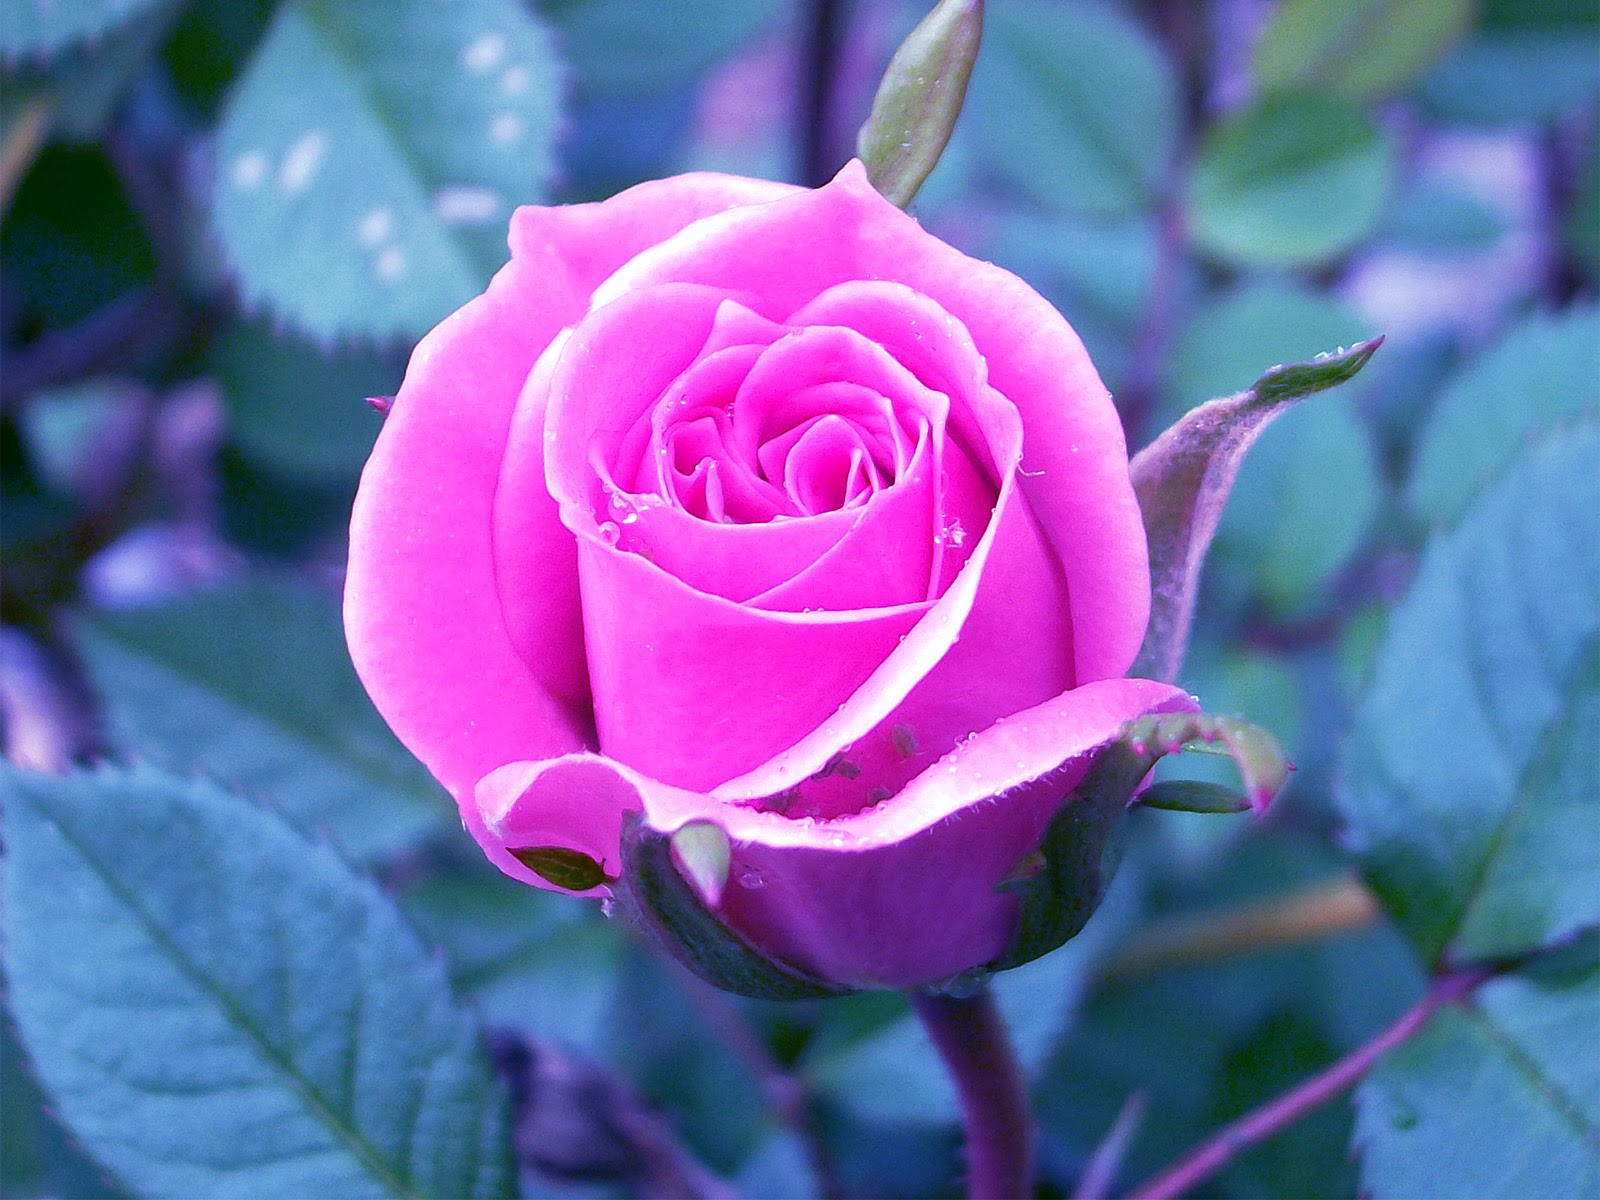 Rosas Wallpapers 3d Tabloide Do Brasil Looking For Offers Rosas Lindas